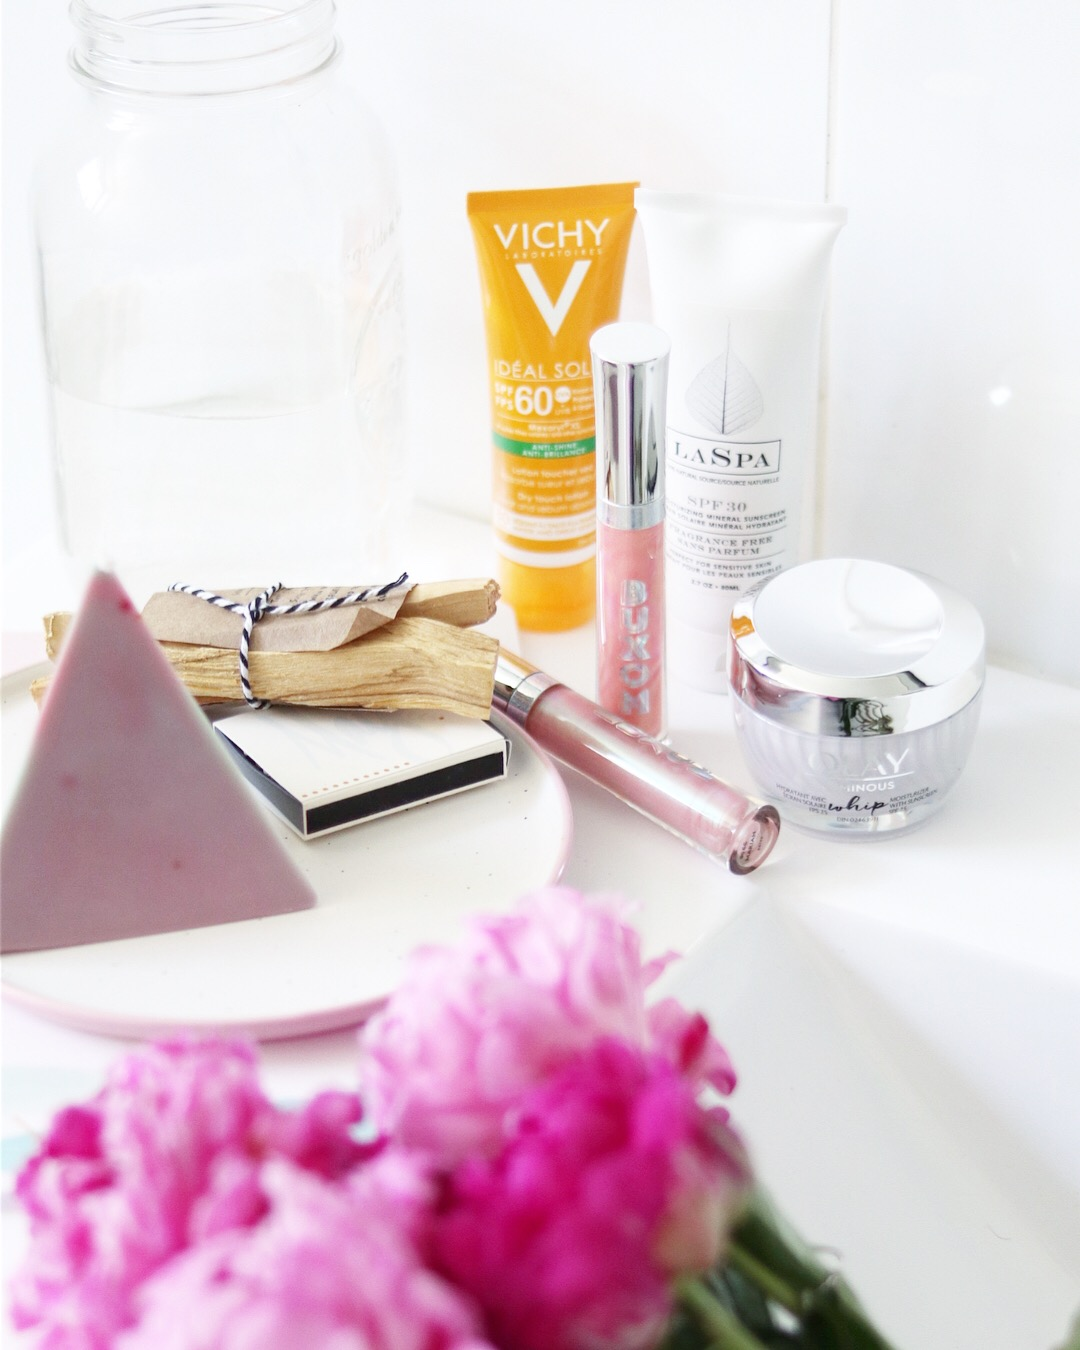 Face and Body sunscreens for summer, st.tropez, pixi sun mist, vichy, laspa natural sunscreen